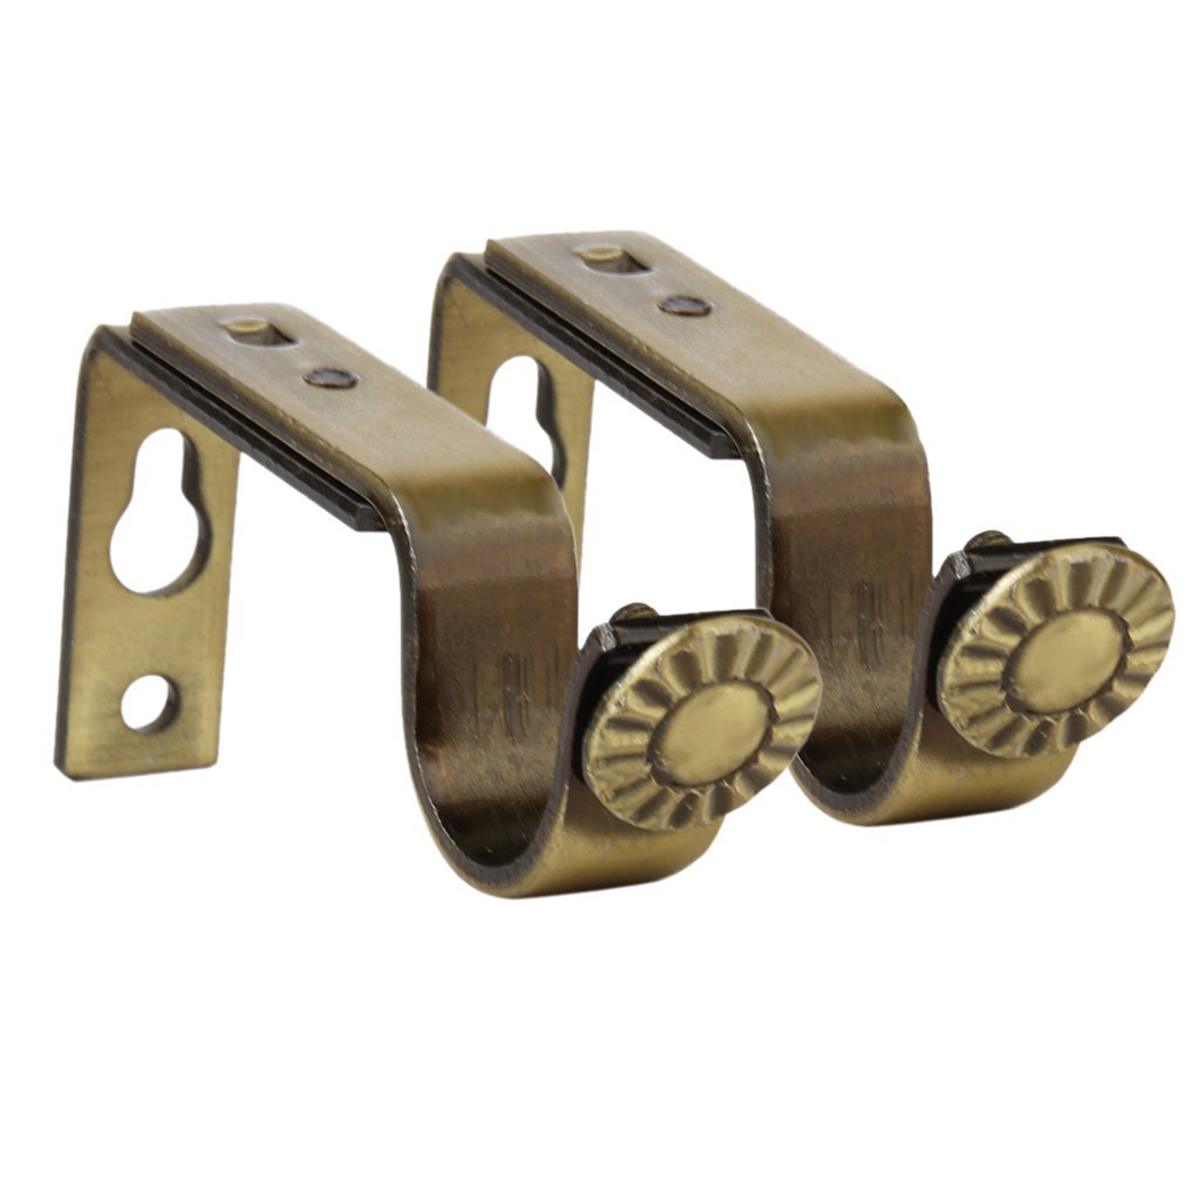 2pcs 22mm Cornices Accessories Pole Mounting Curtain Holder (Bronze) Curtain rome rod curtain pole mount single curtain holder(China (Mainland))